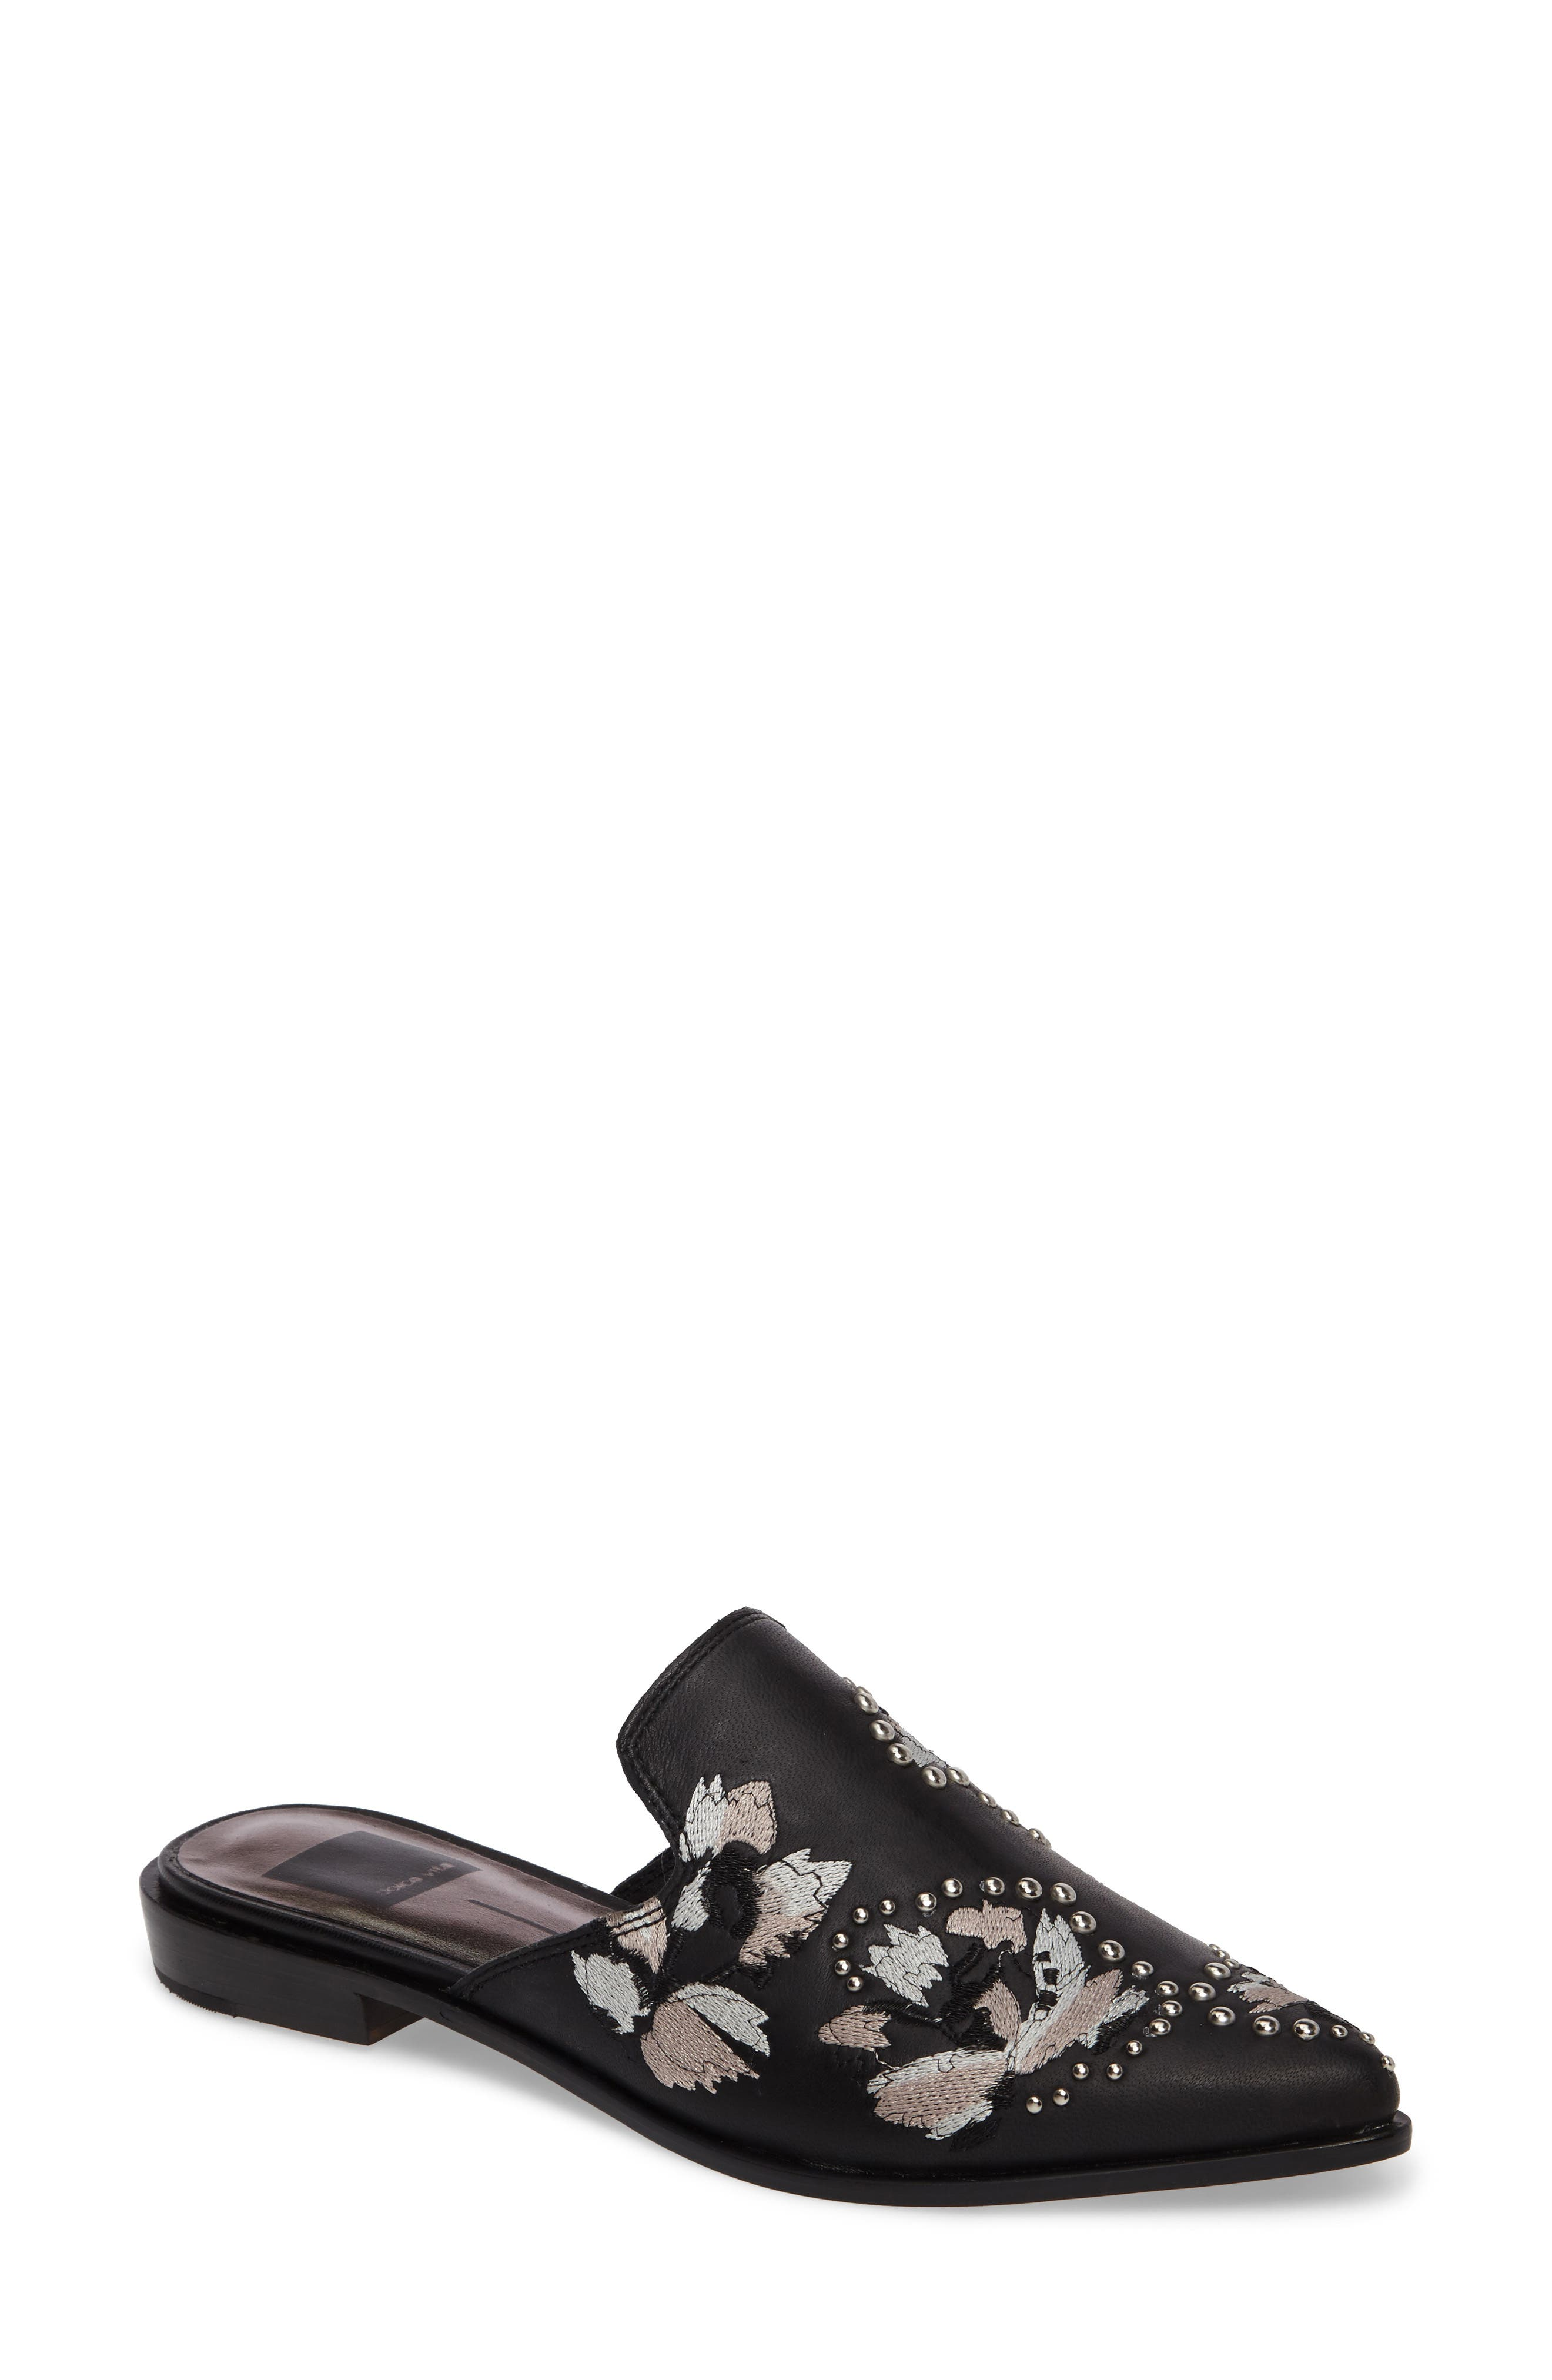 Harmony Embellished Loafer Mule,                             Main thumbnail 1, color,                             001